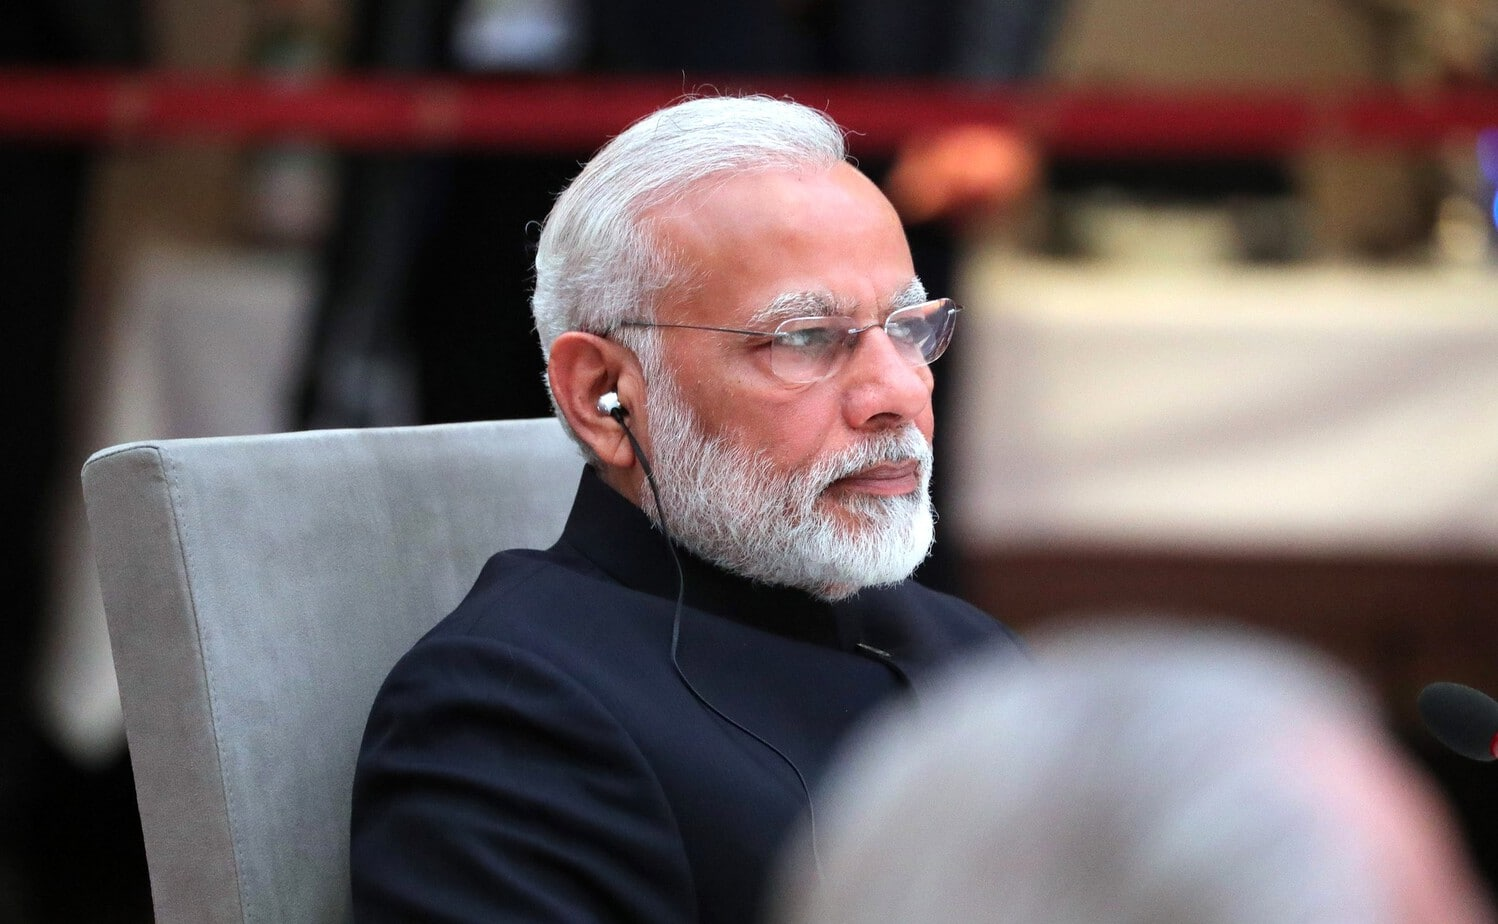 Modi 2 season, we can expect 7 Economic reforms